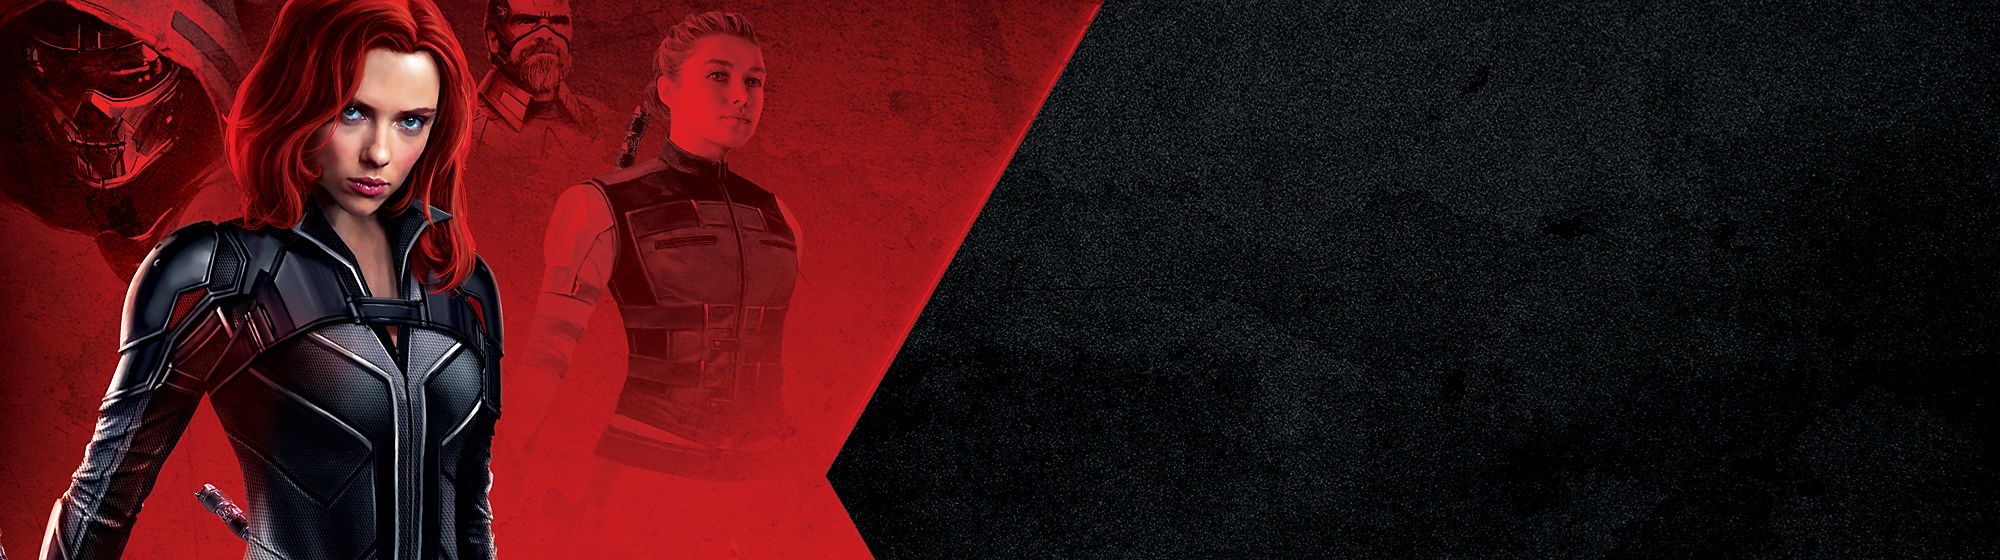 Black Widow Discover the exciting world of Marvel with our Black Widow merchandise, including fancy dress costumes, figures and toys